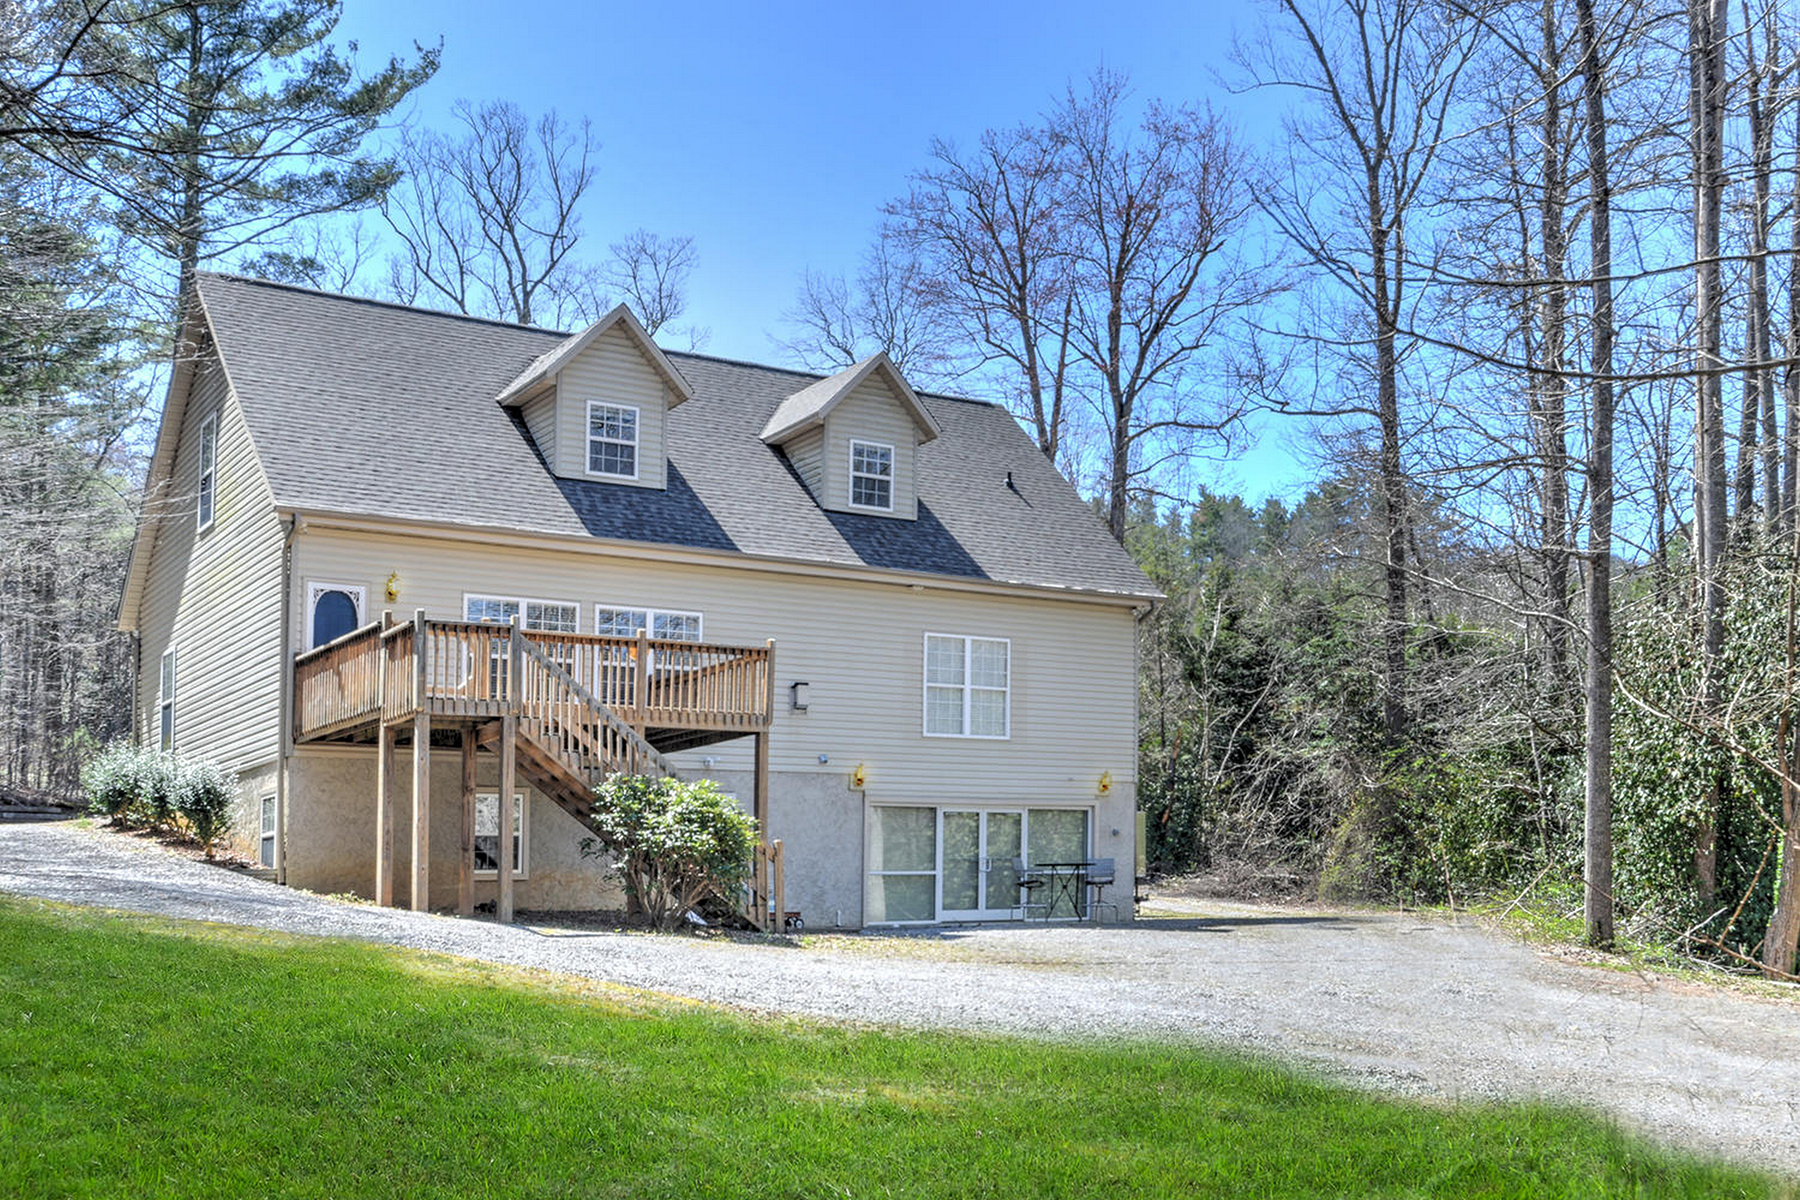 Single Family Home for Active at FAIRVIEW 985 Charlotte Hwy Fairview, North Carolina 28730 United States